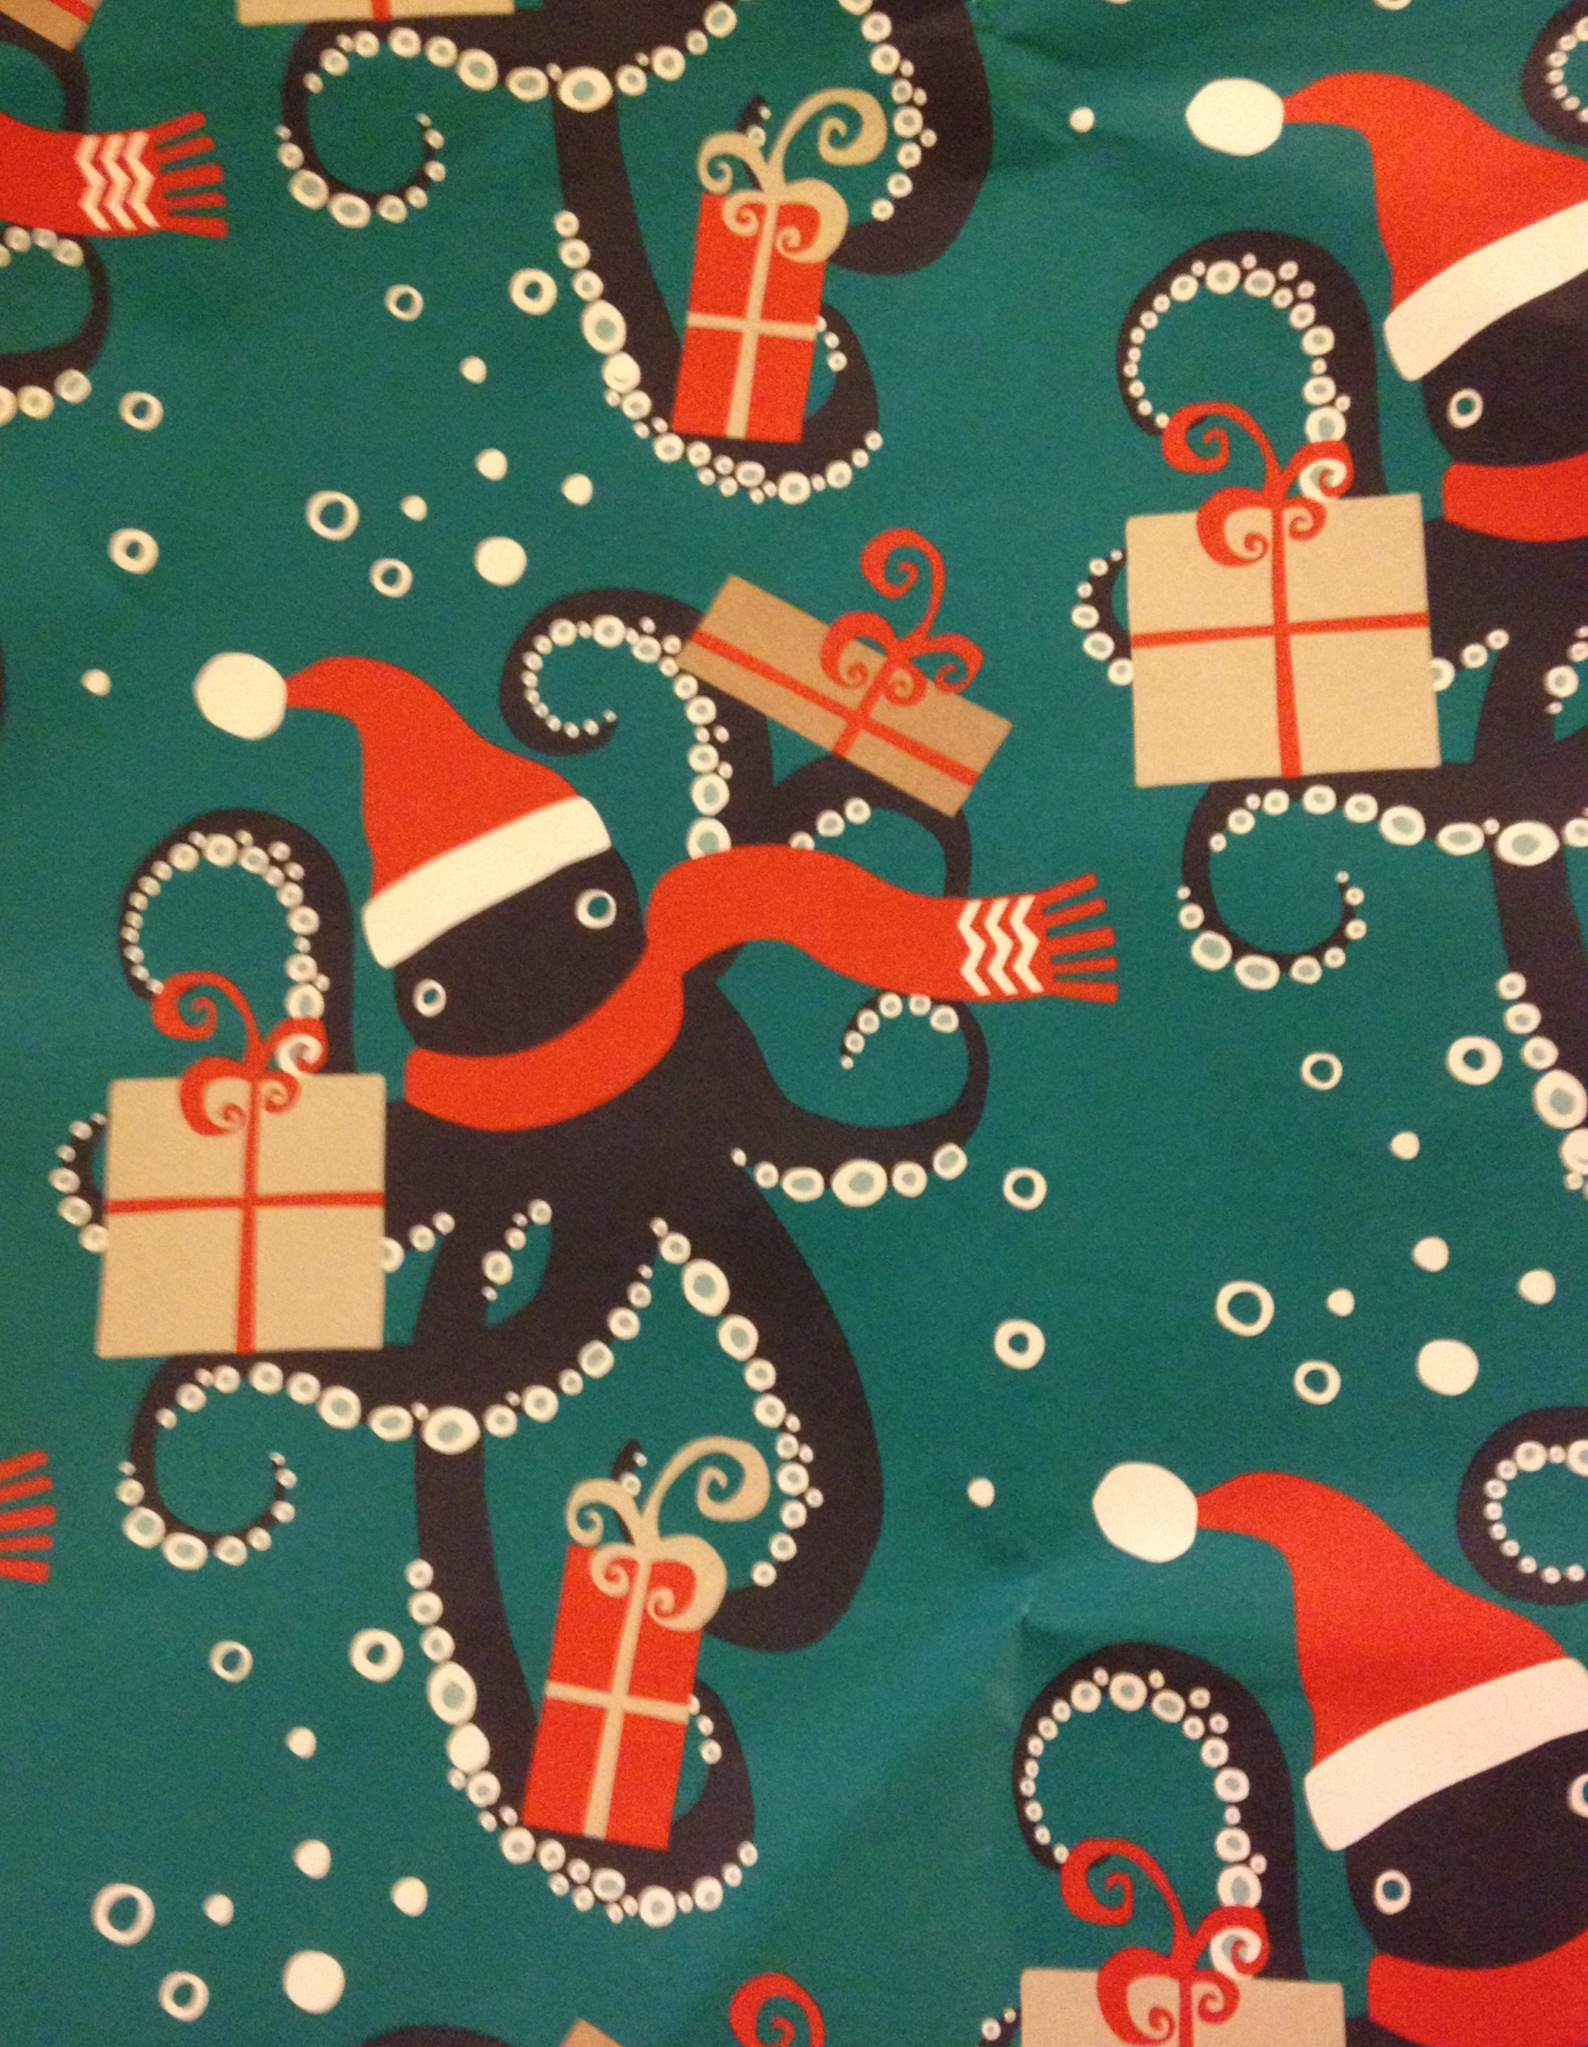 Octopus Wrapping Paper